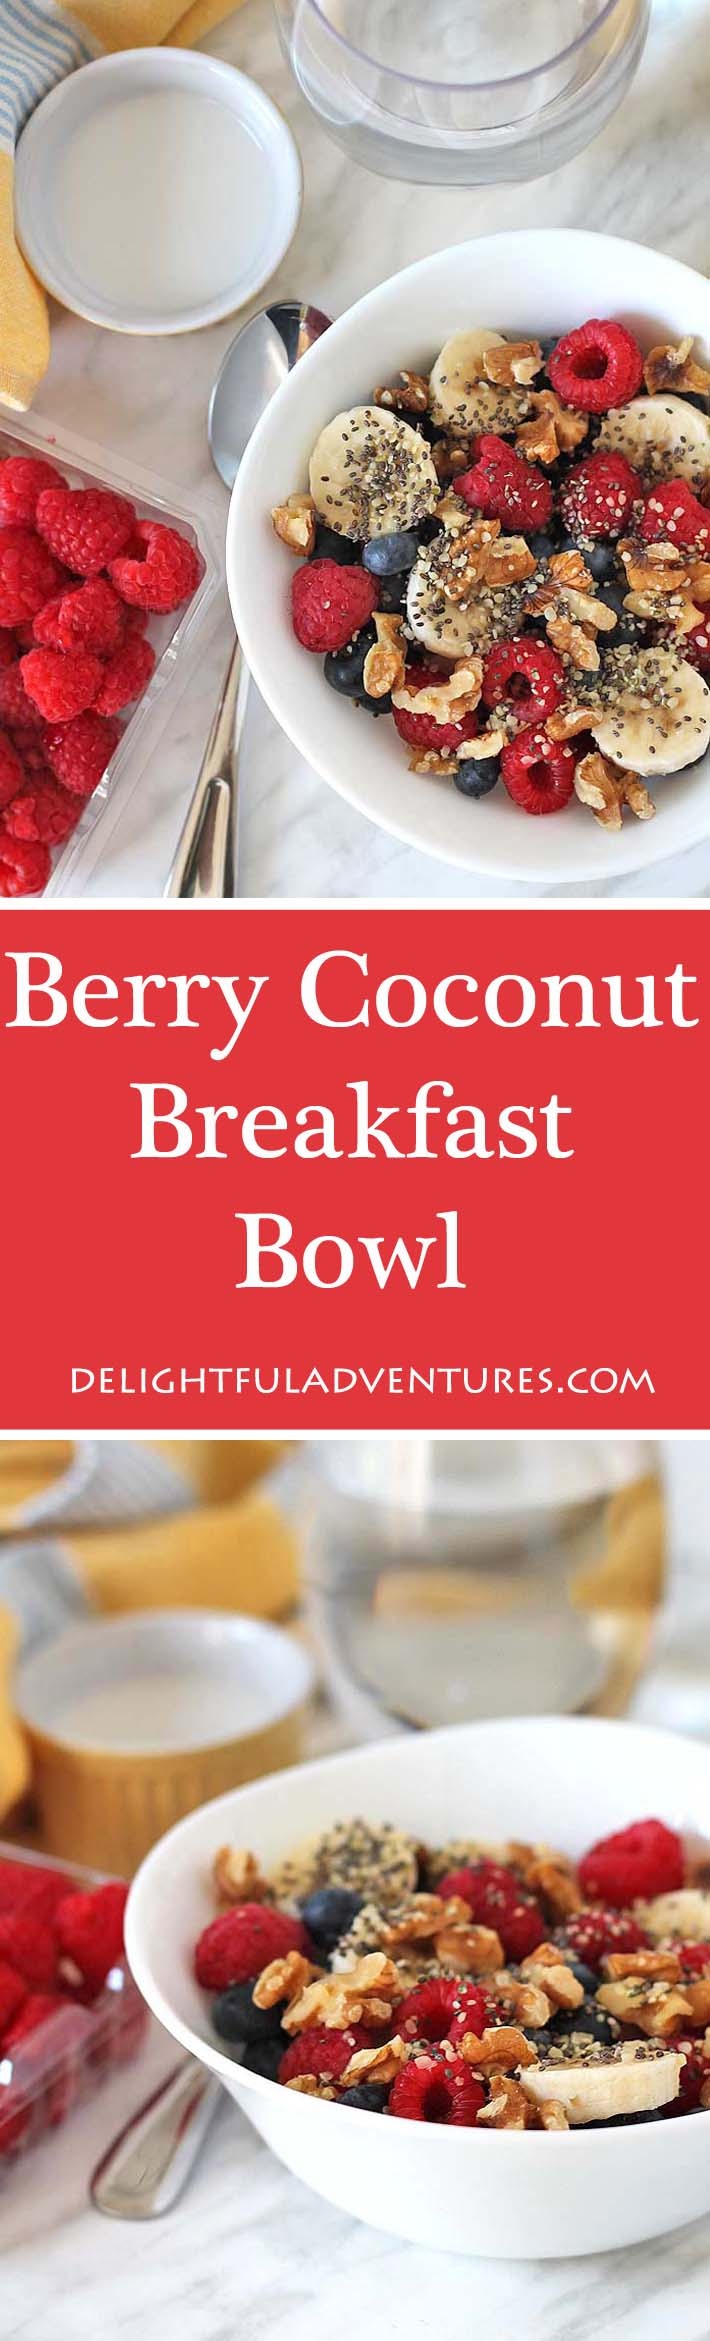 This quick, easy, delicious, and customizable Berry Coconut Breakfast Bowl is loaded with fresh berries, seasonal fruit, and coconut milk!